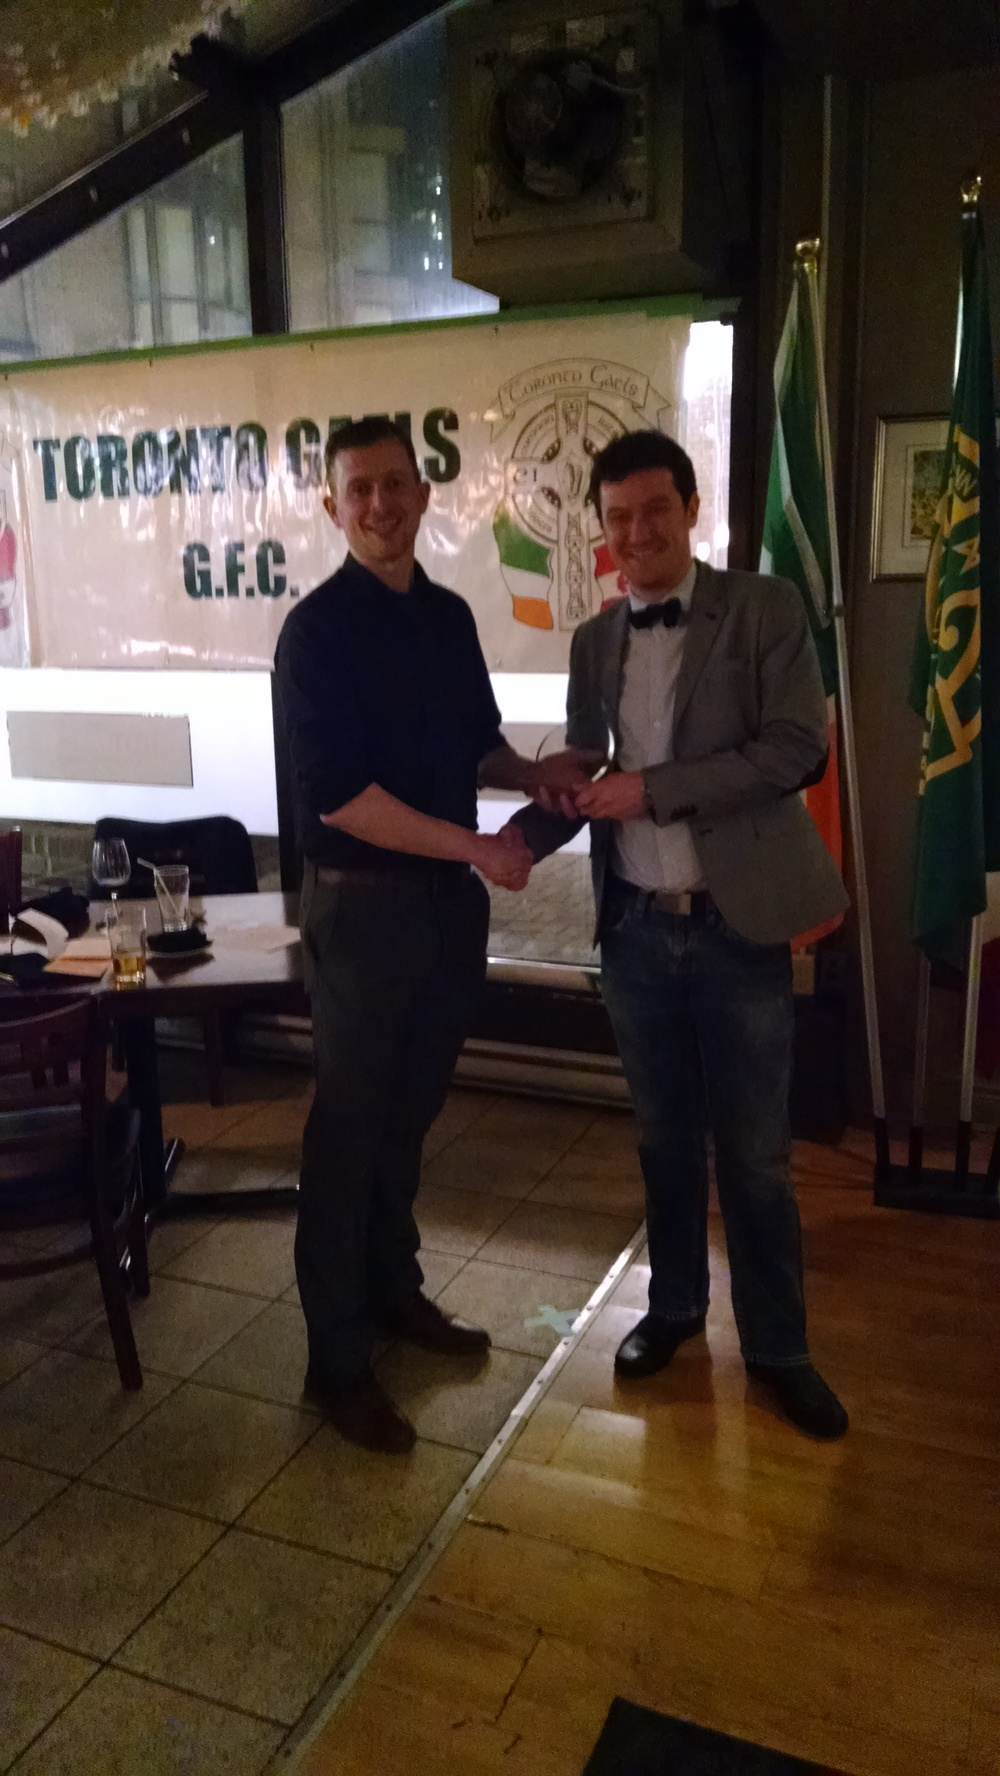 Toronto Gaels Gaelic Football Club - Awards Night 2015 - 3.jpg